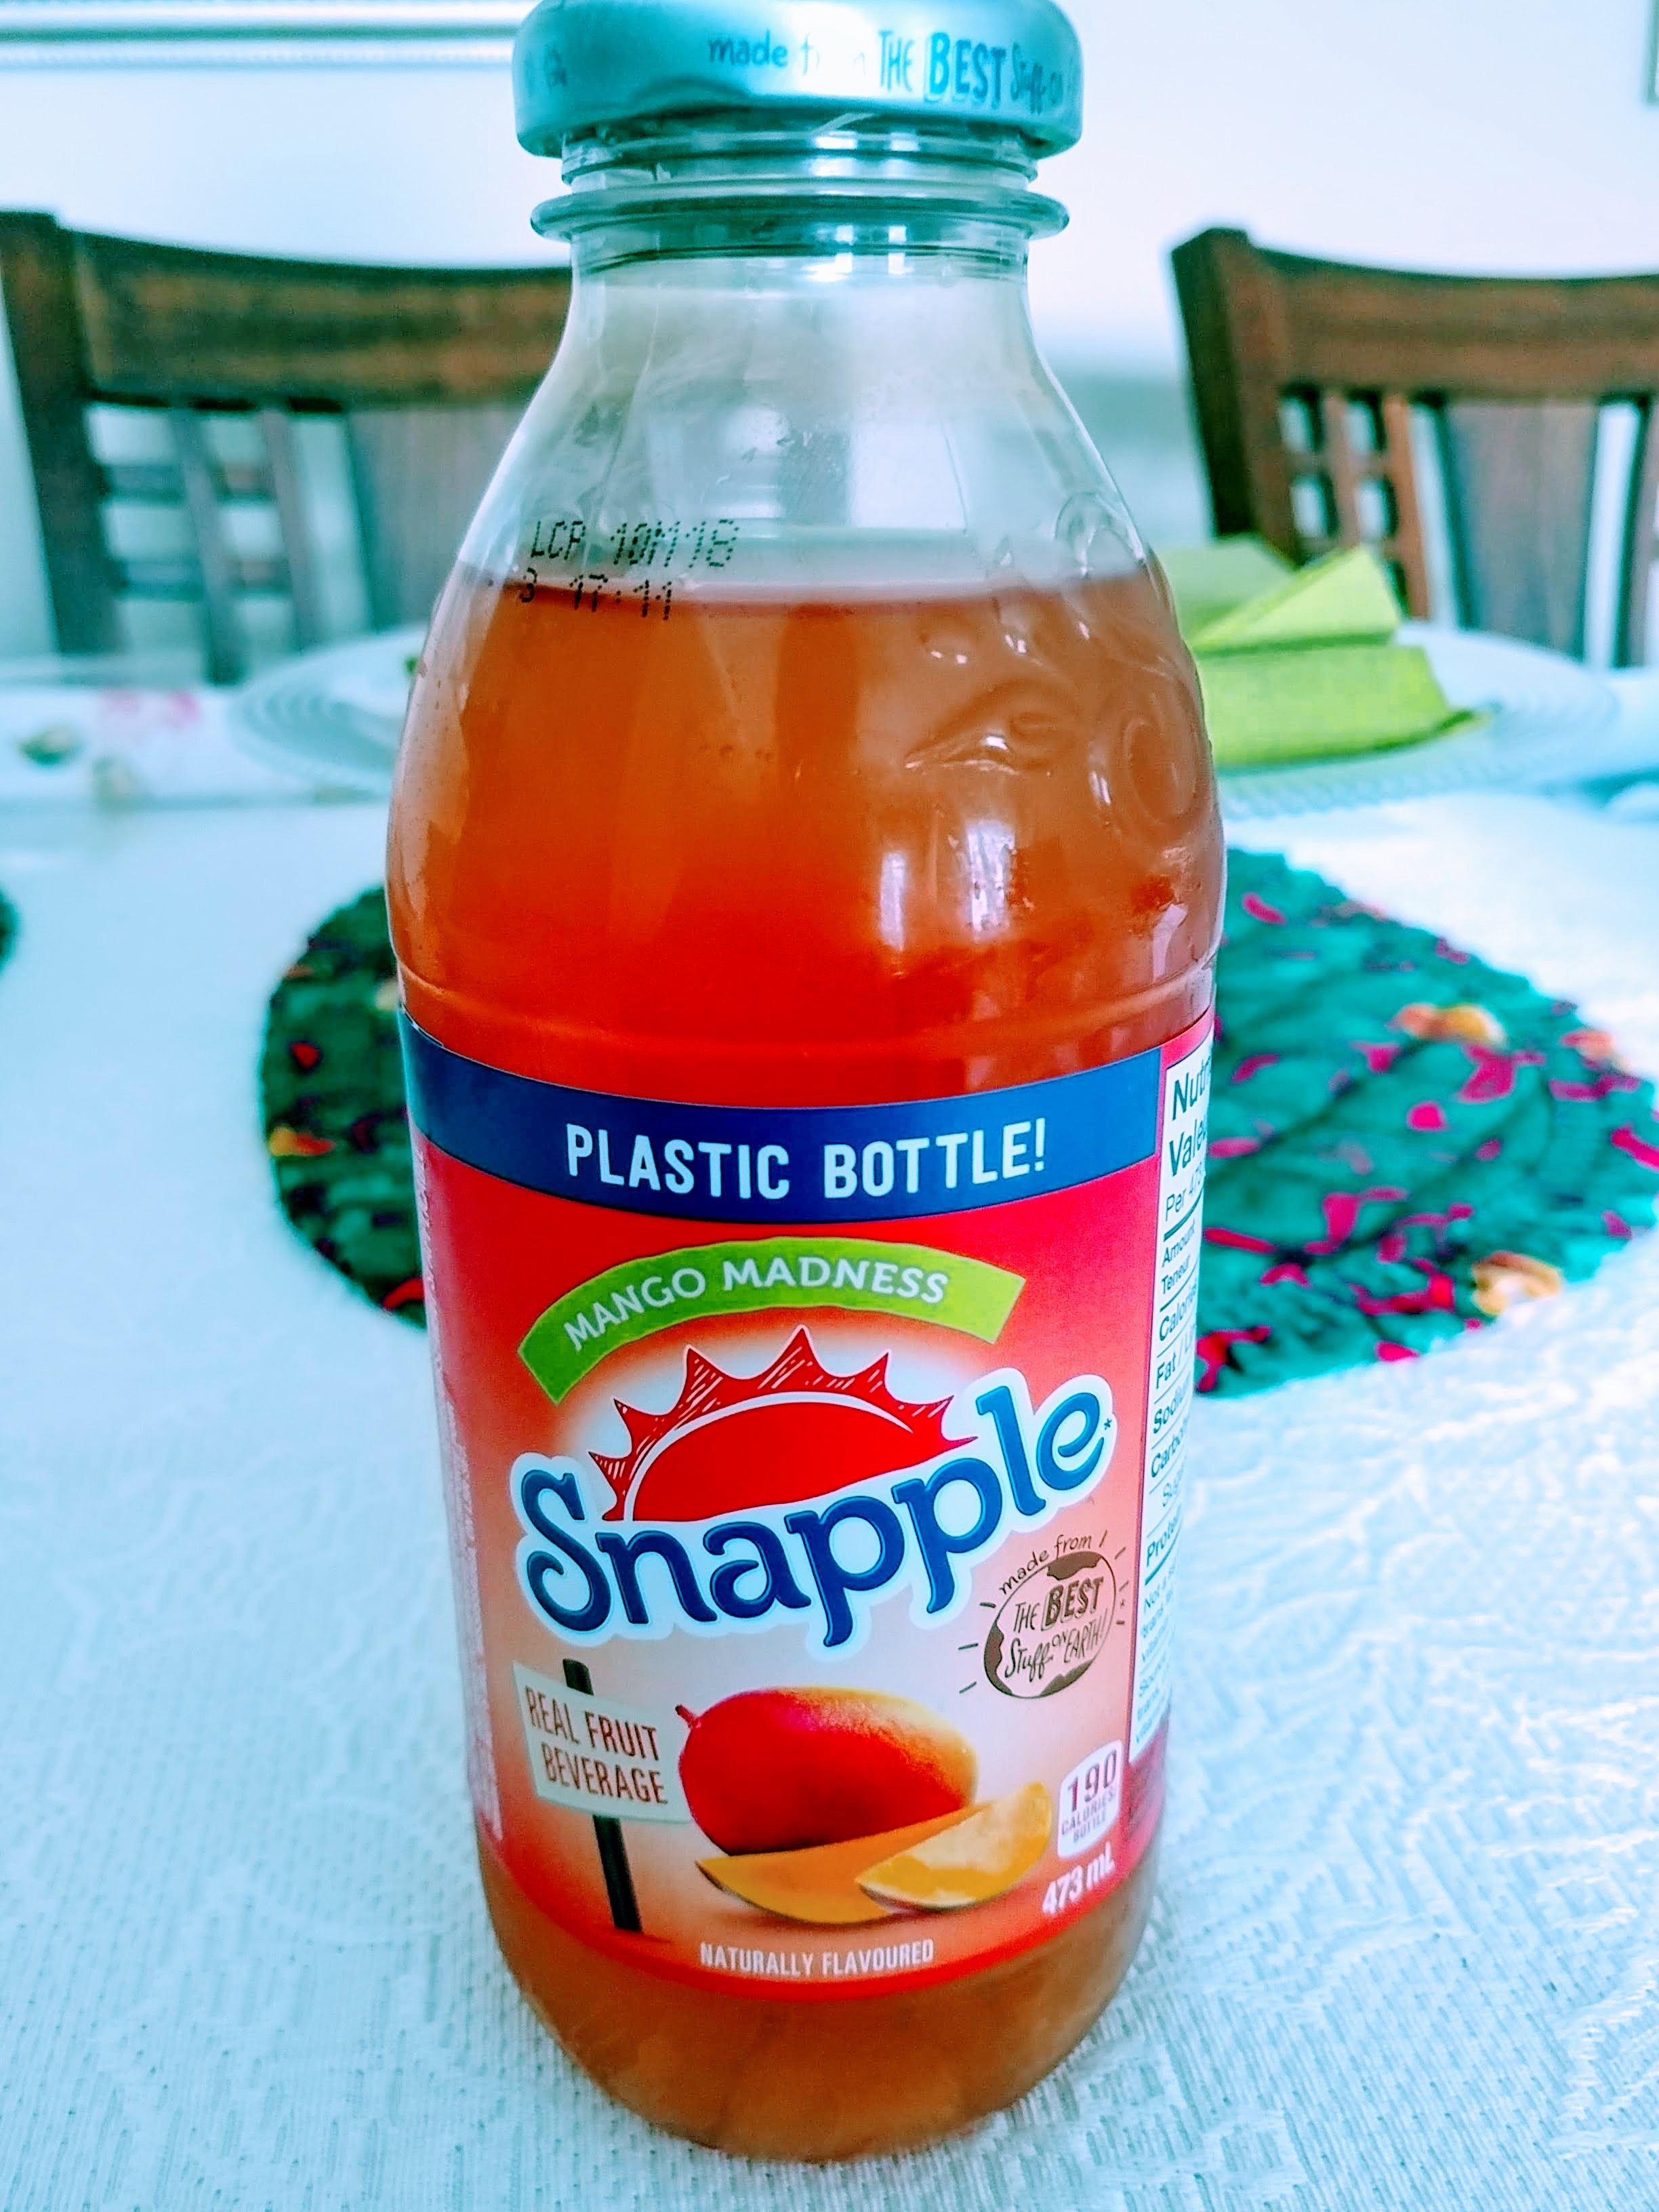 Snapple Mango Madness Juice Drink reviews in Juice